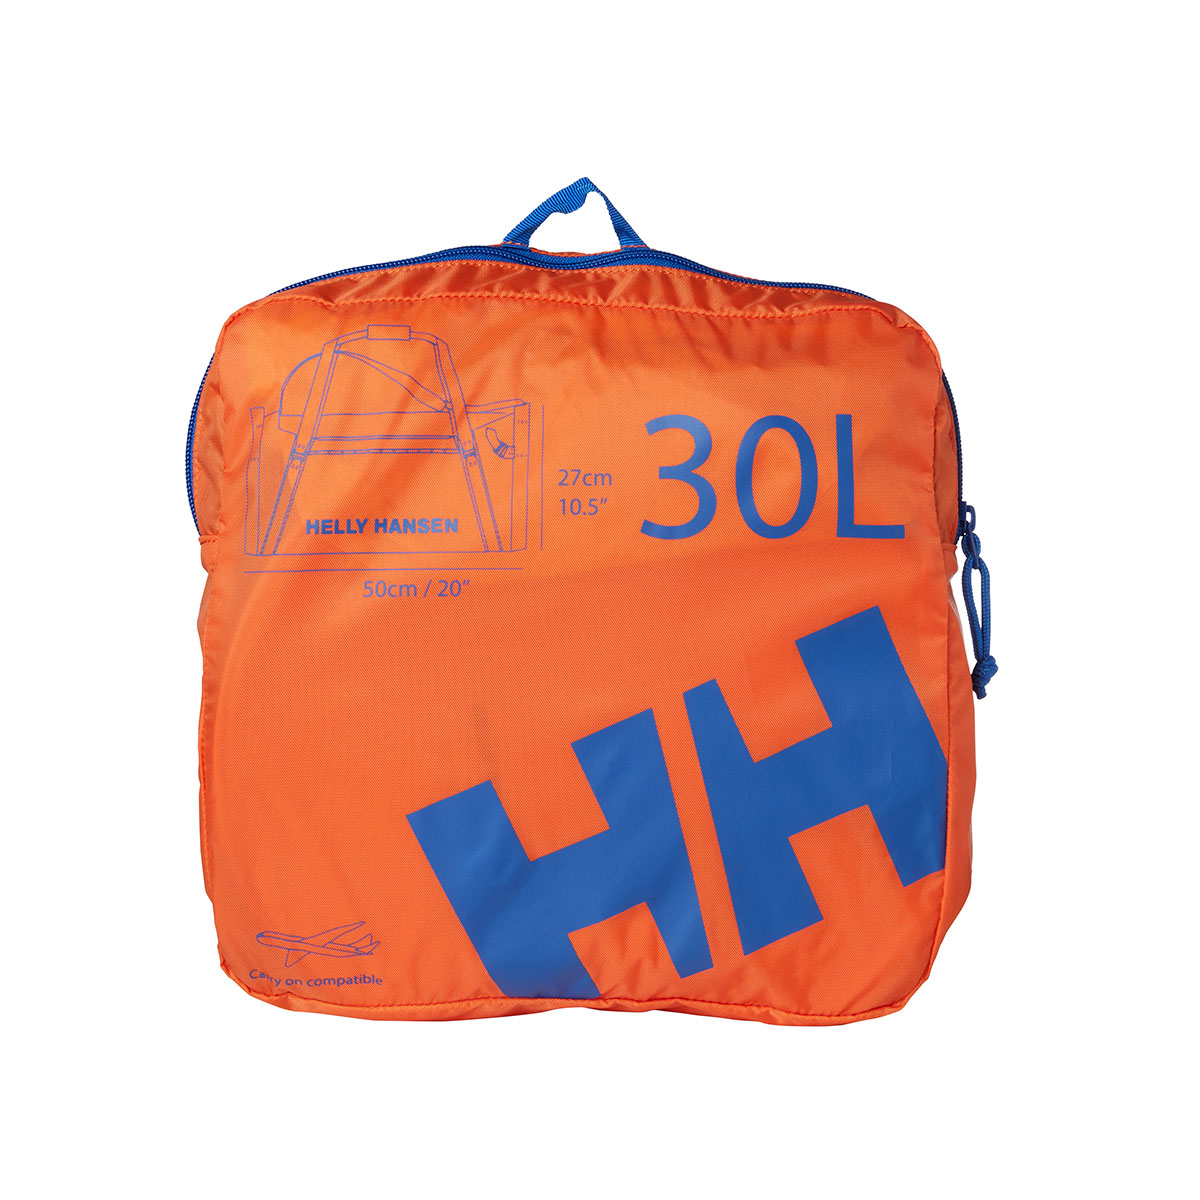 72634a400081 Helly Hansen 2019 HH Duffel Bag 2 30L Holdall Waterproof Durable 25 ...